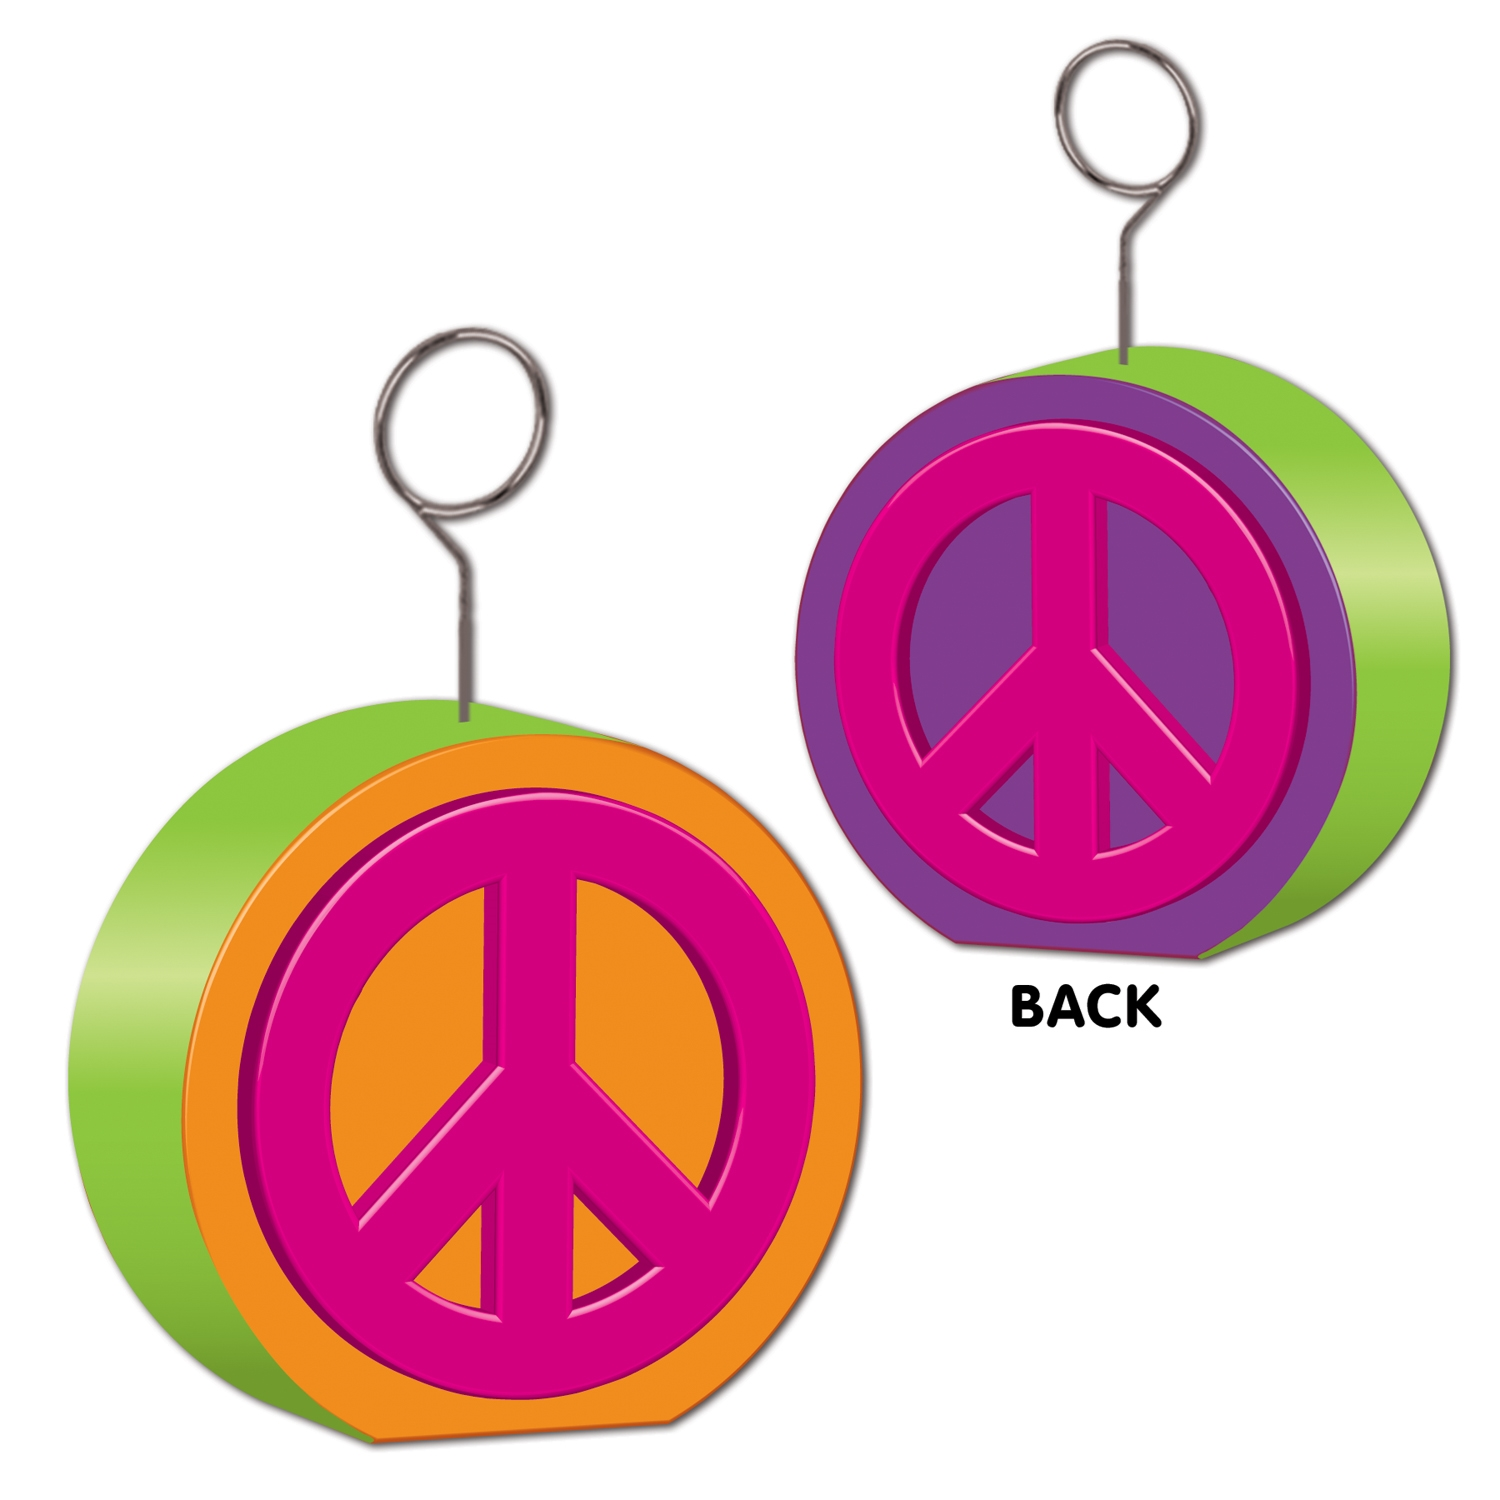 Peace Sign Photo/Balloon Holder (Pack of 6) Balloon Holder, Photo Holder, Peace Sign, 1960s Decor, Wholesale party supplies, Cheap peace signs, Groovy decorations, Cheap decor, Retro supplies, Tie-Dyed